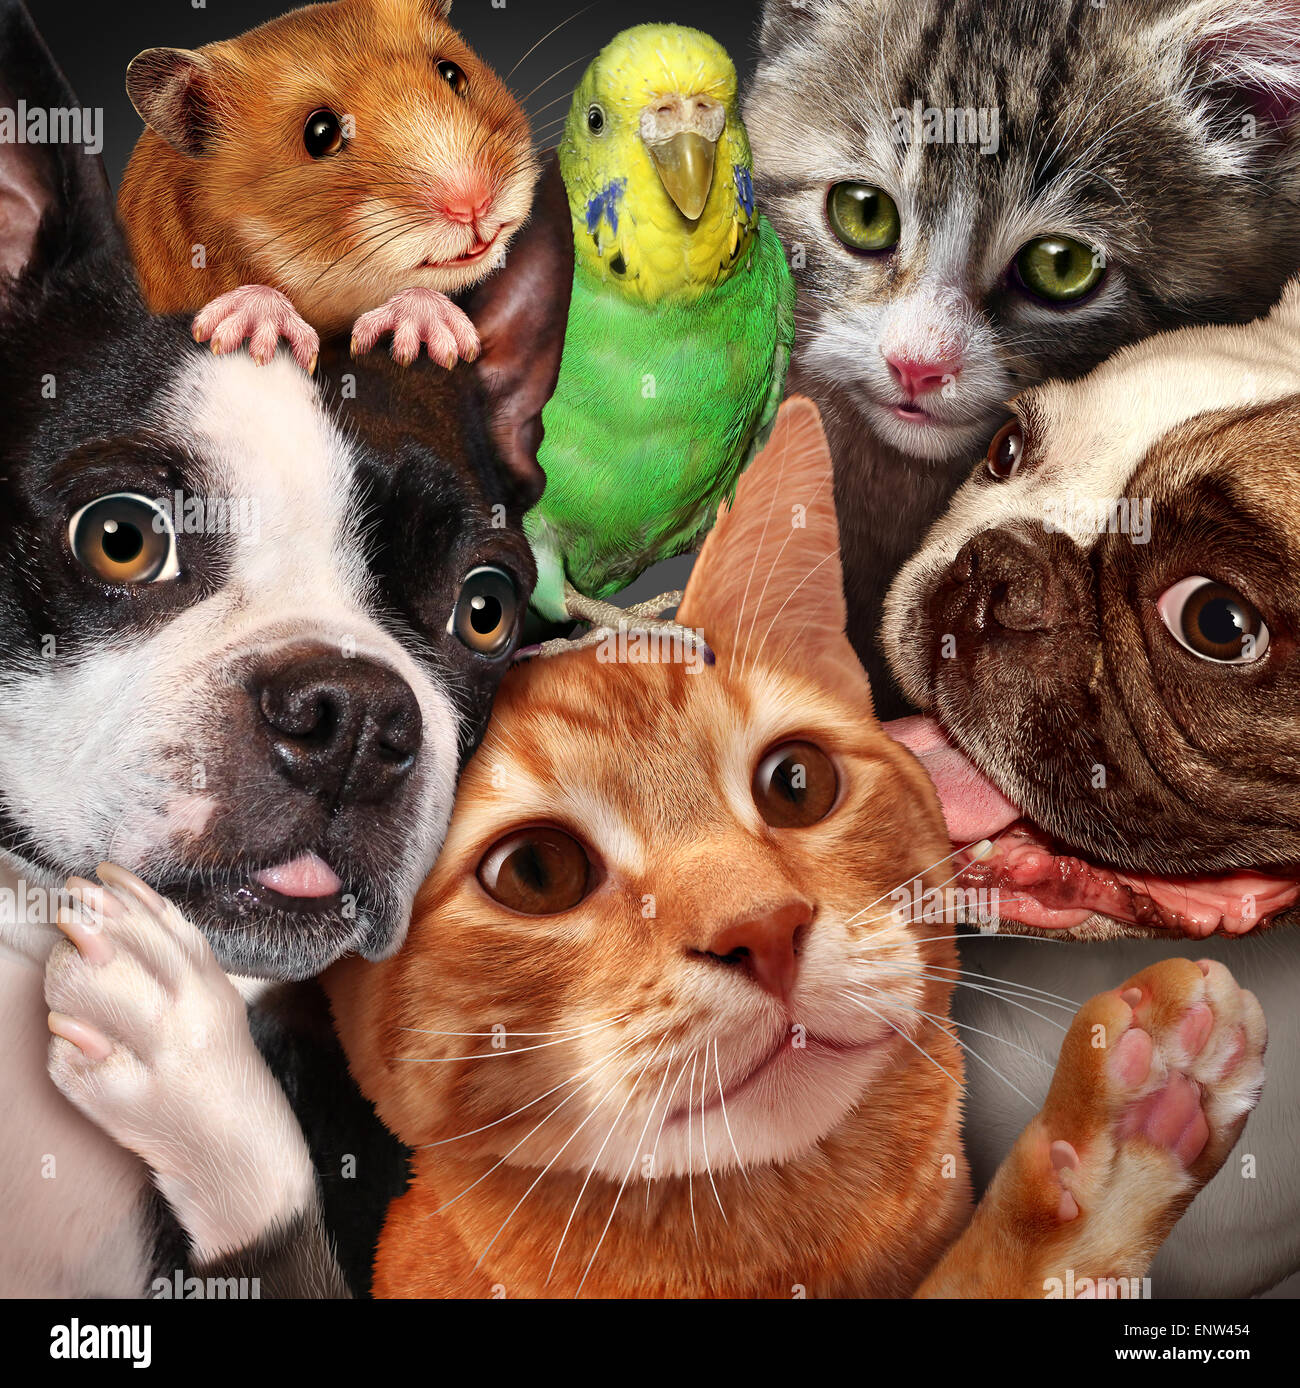 Cute Baby Pets Live Wallpaper Download Pet Group Concept As Dogs Cats A Hamster And Budgie